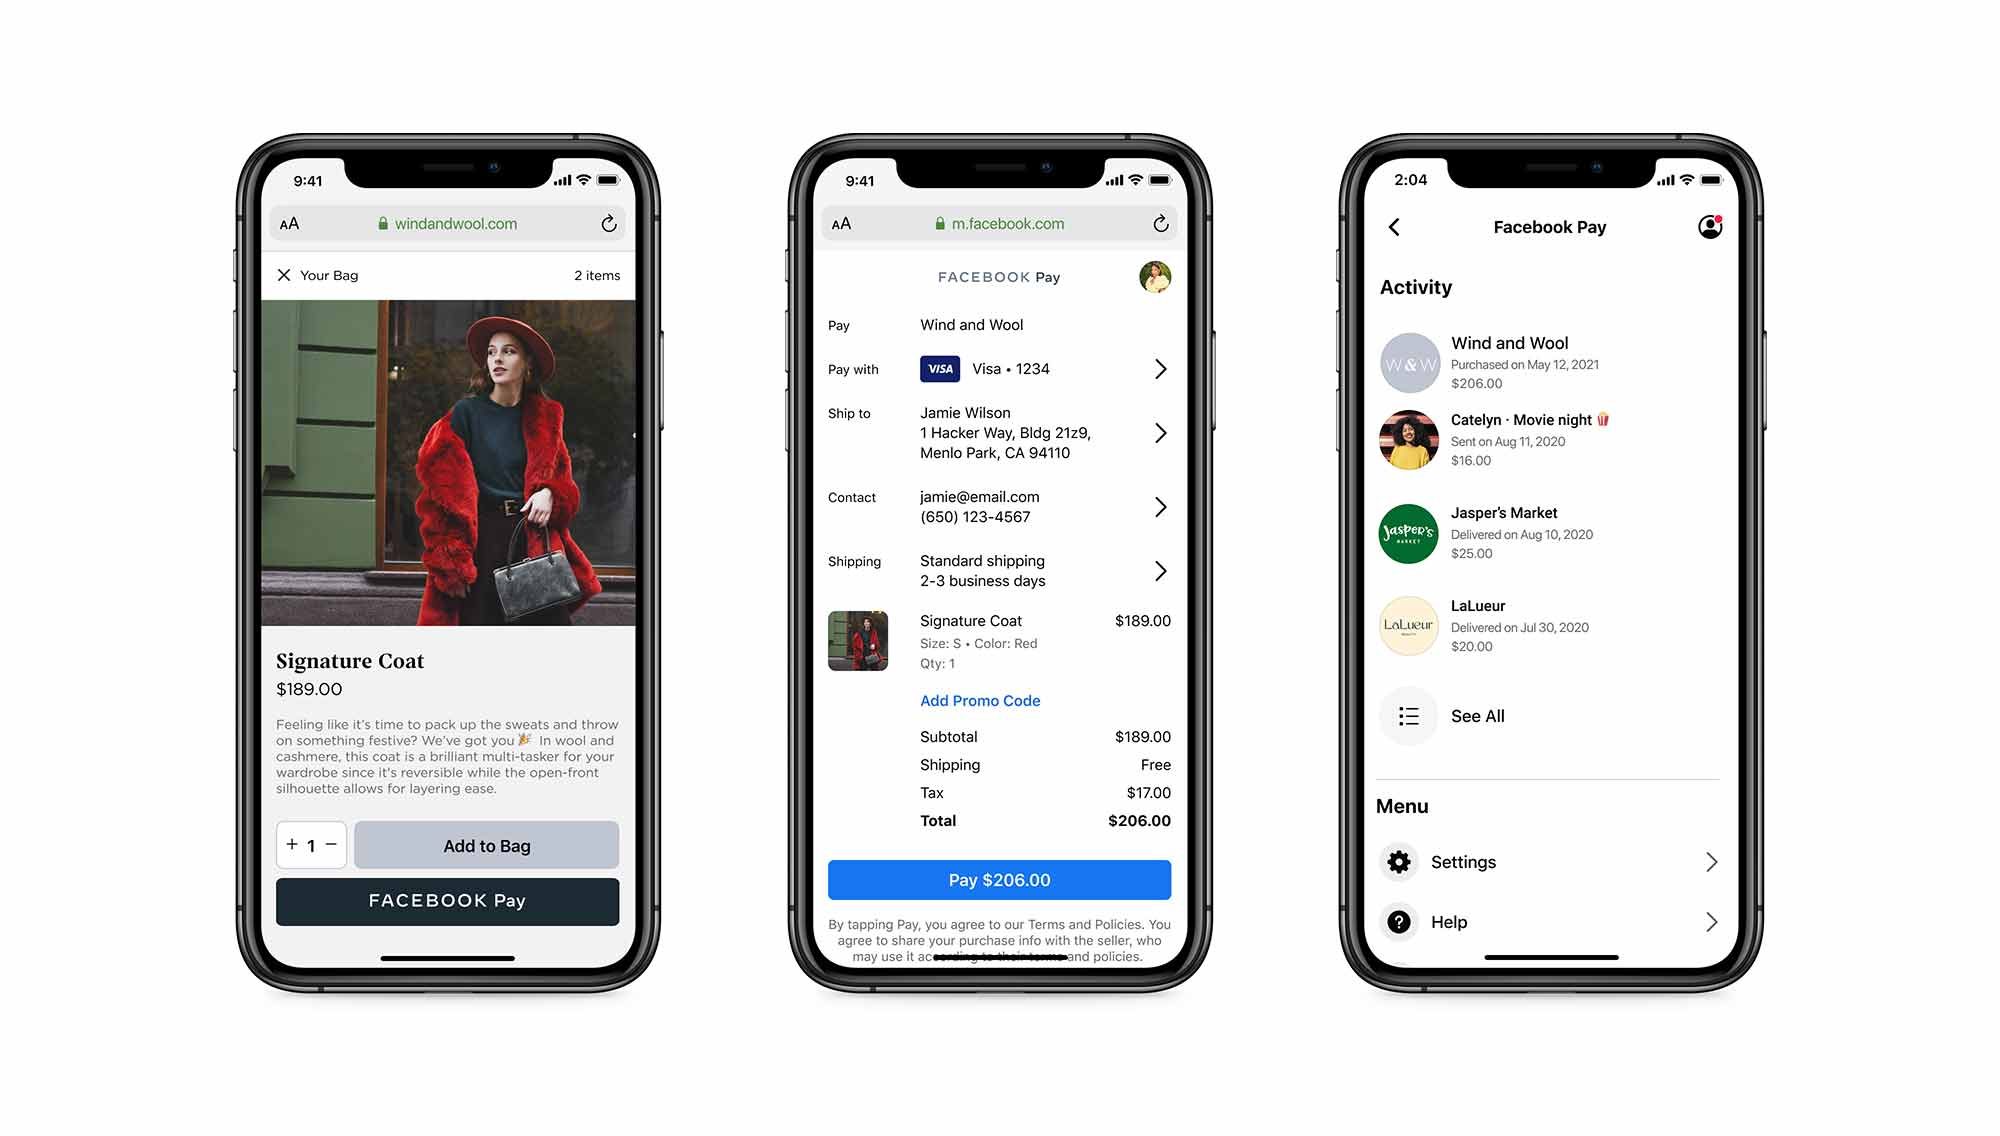 The Facebook Pay buttons arrive in August online stores